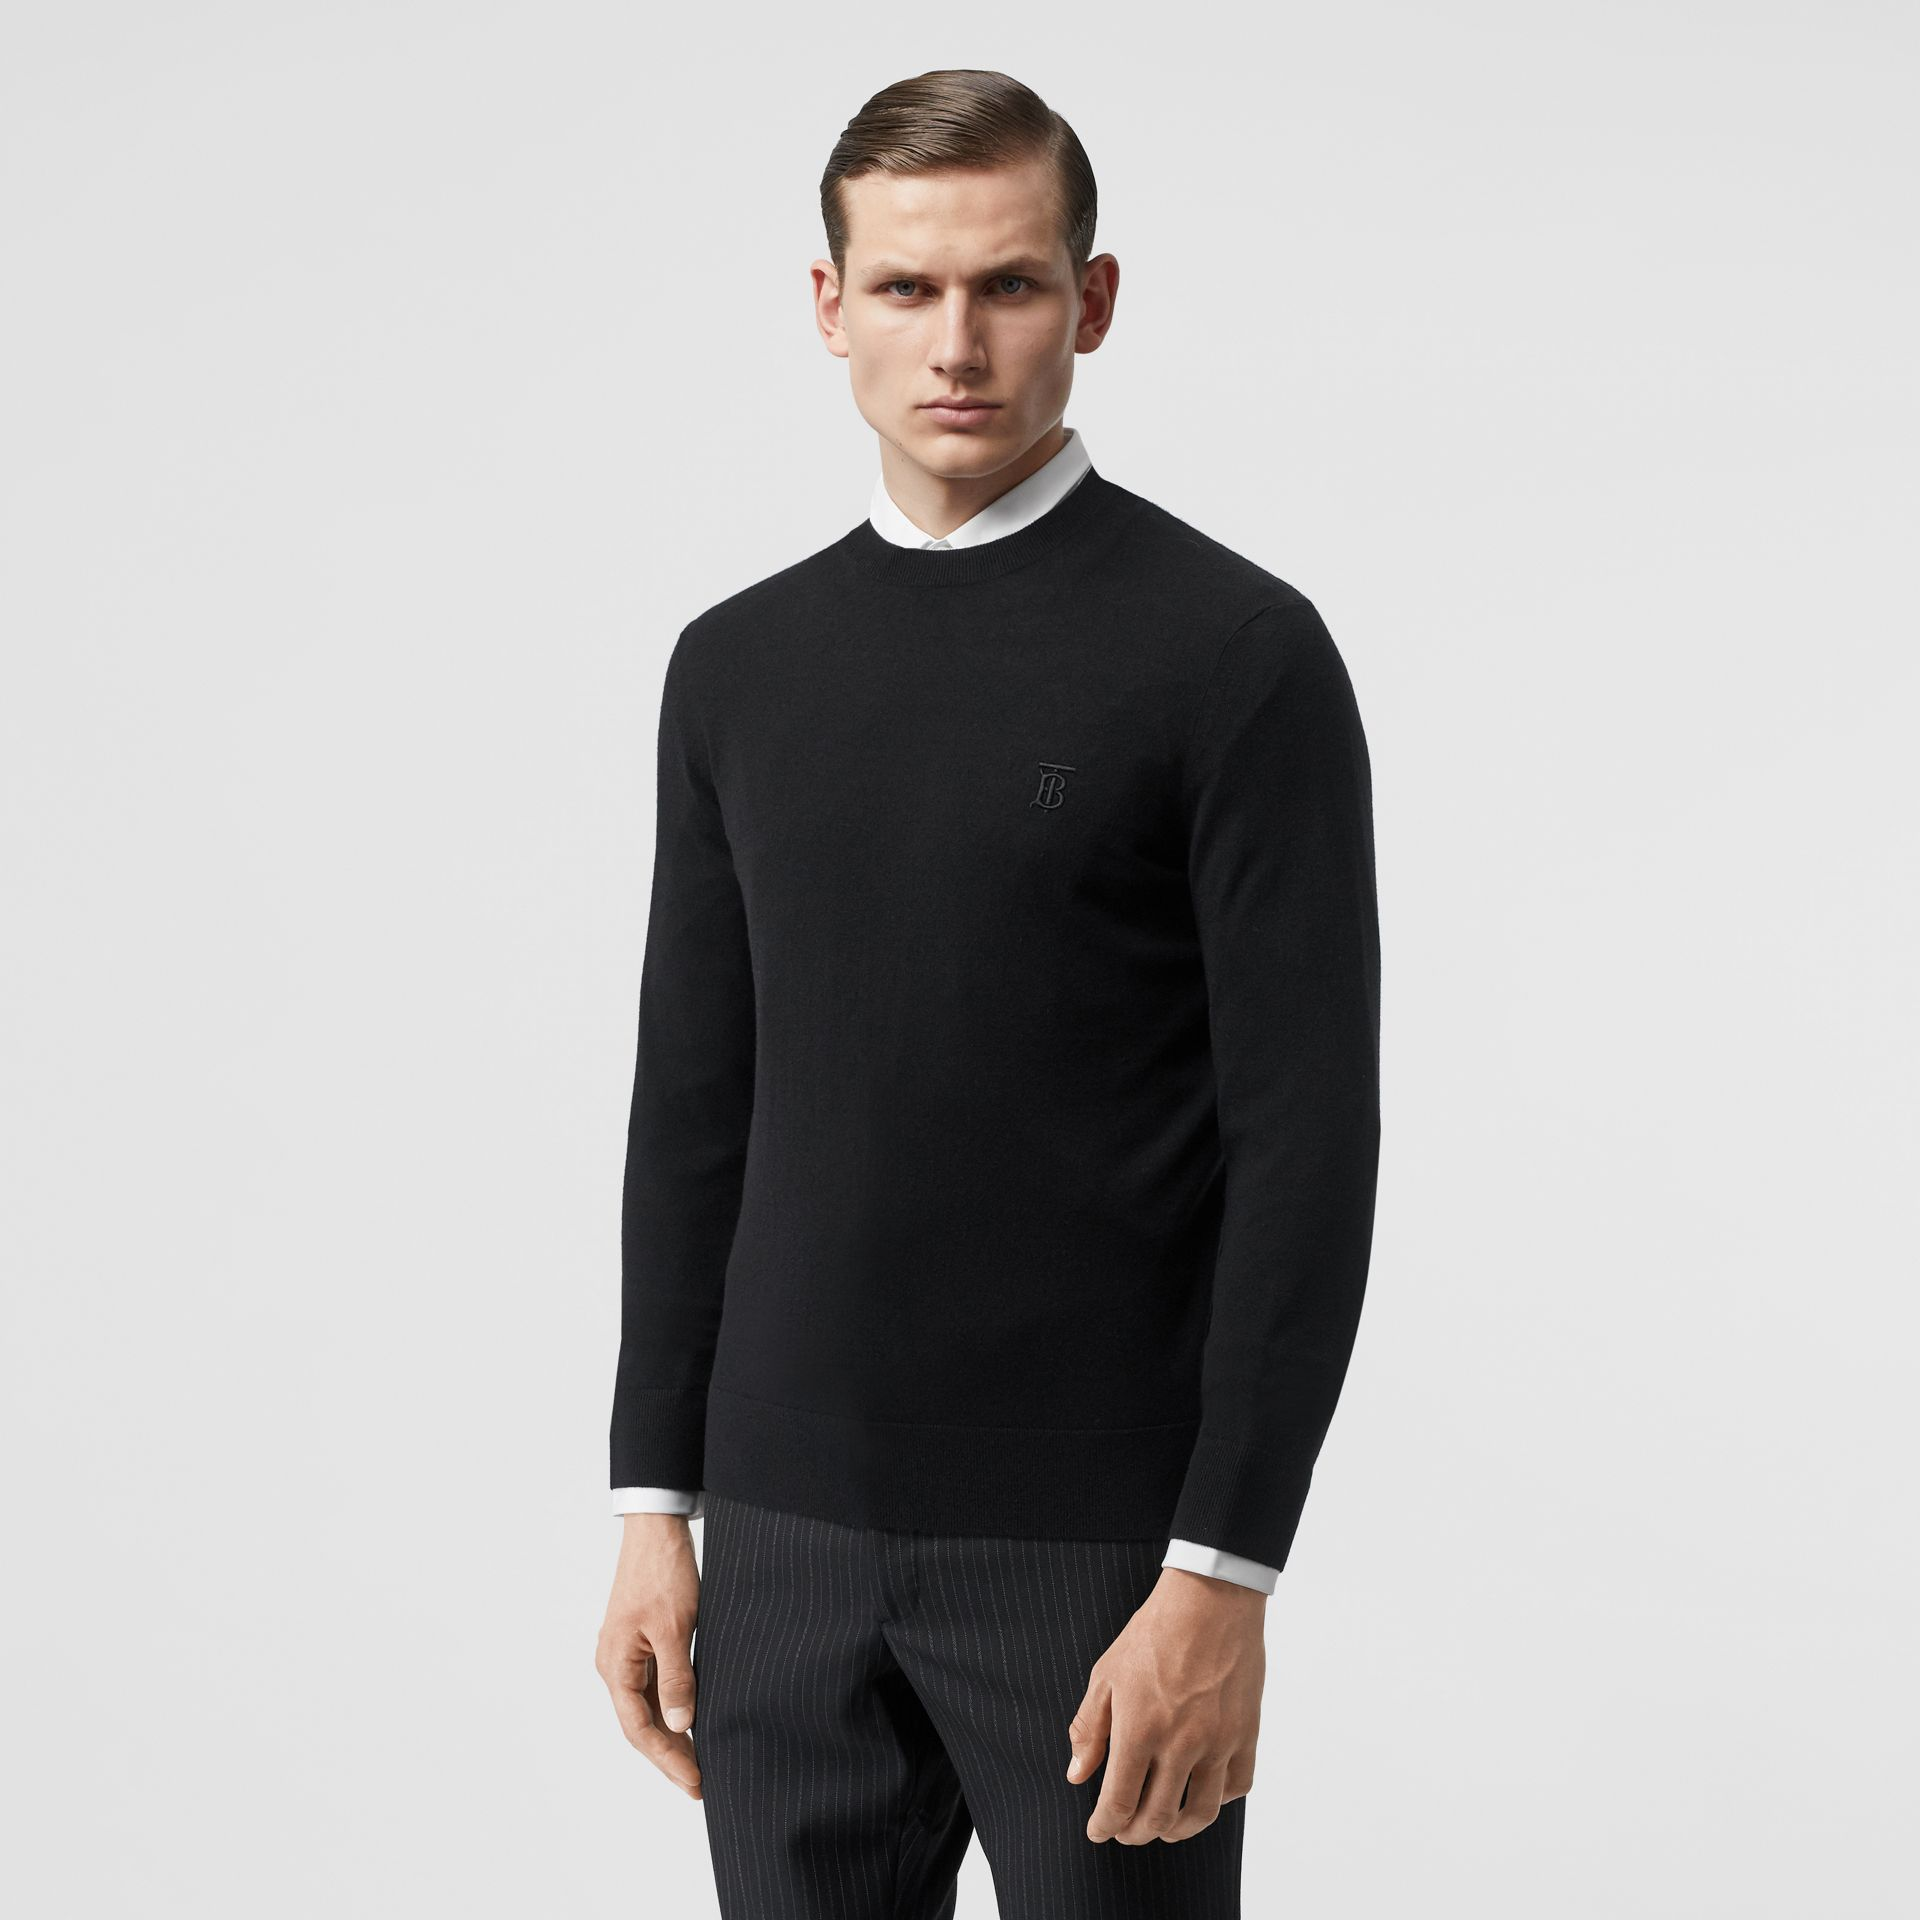 Monogram Motif Cashmere Sweater in Black - Men | Burberry - gallery image 0